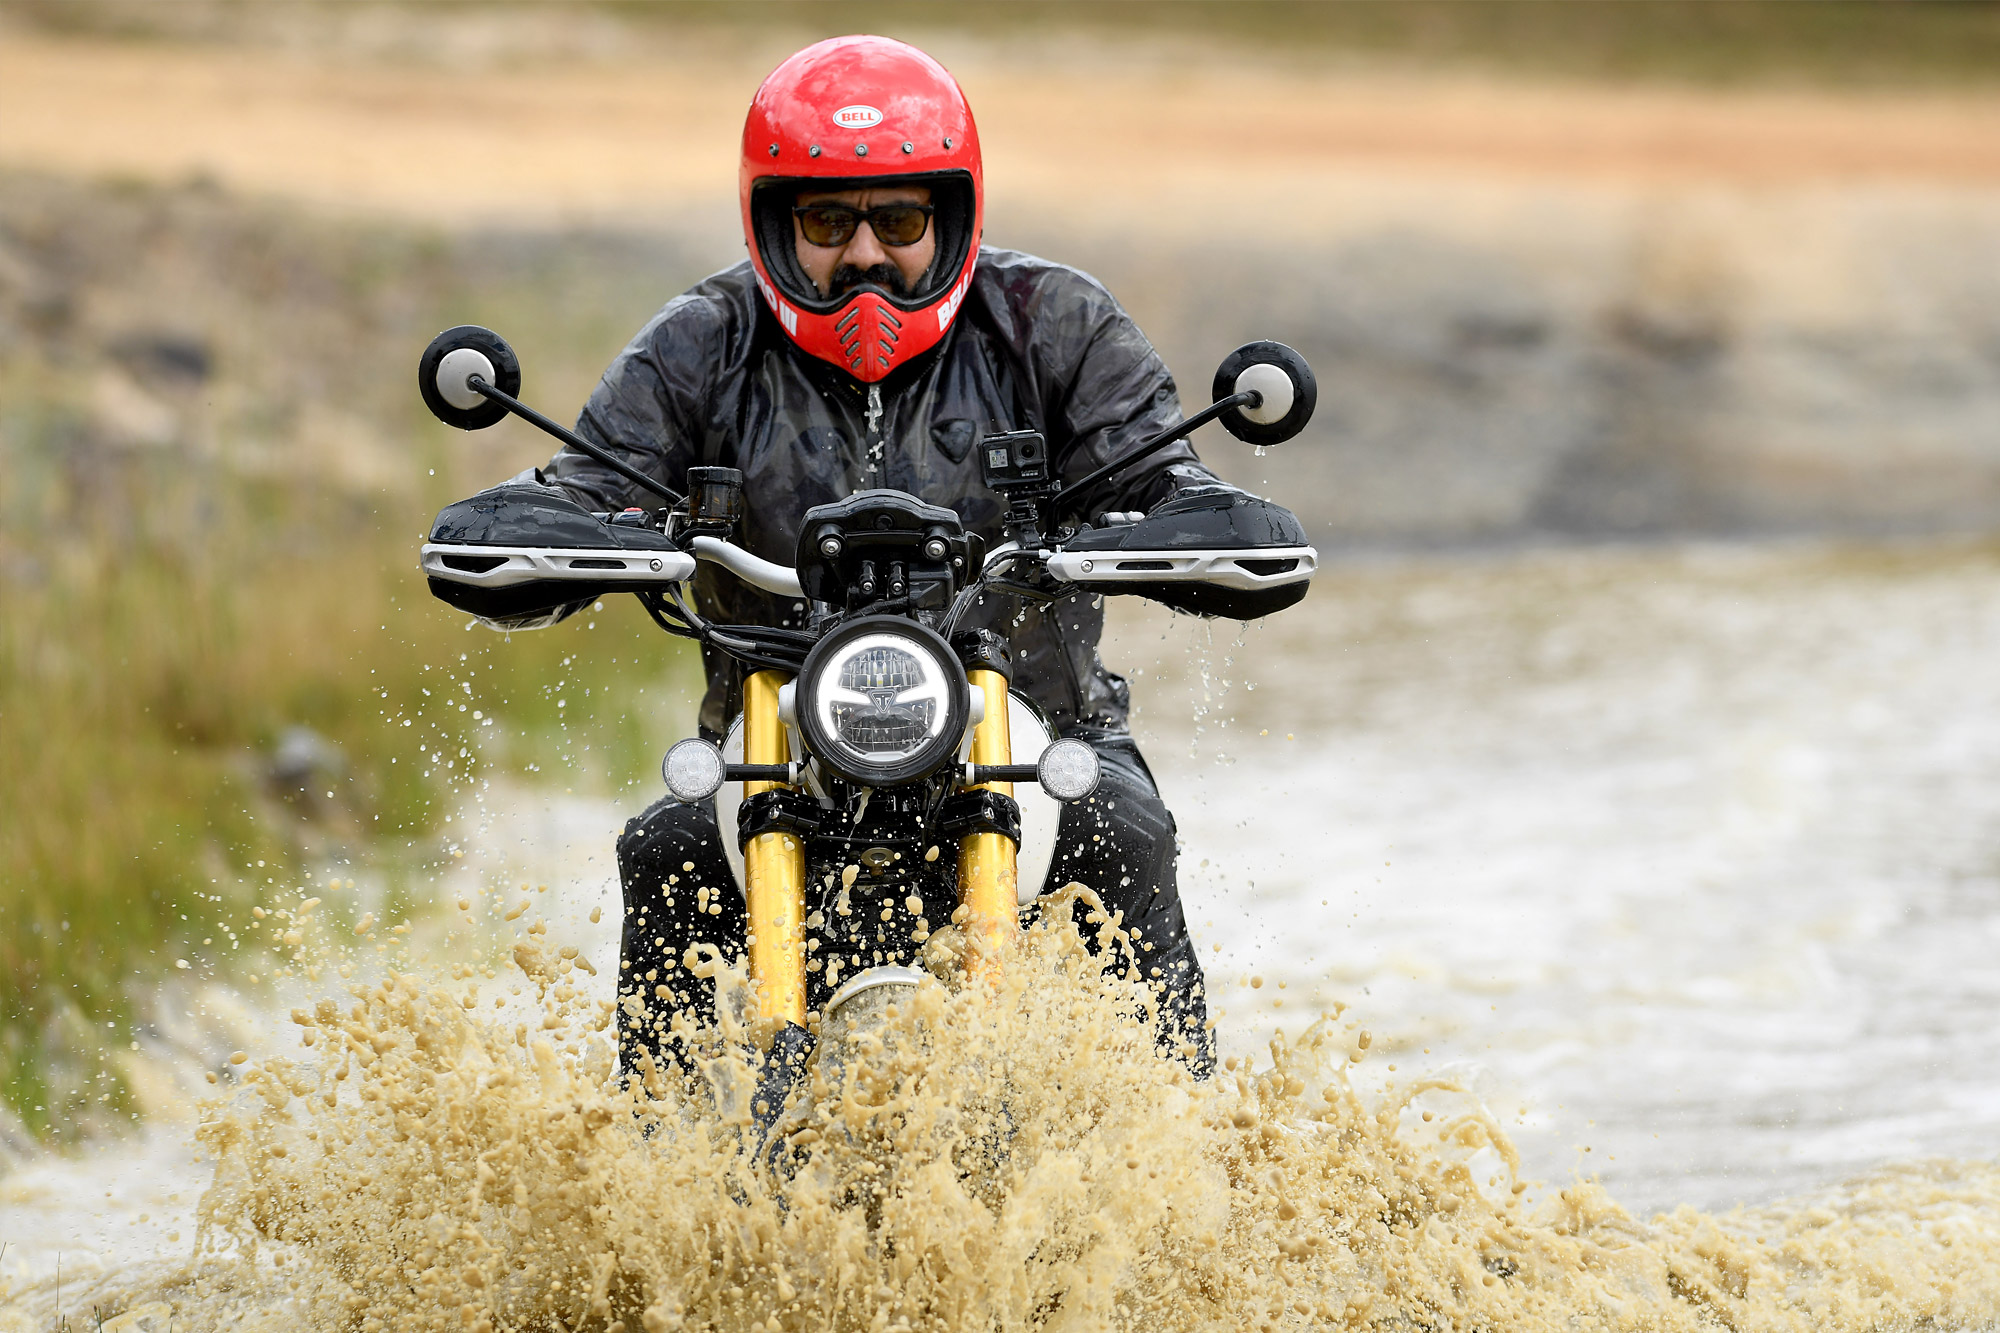 2019 Triumph Scrambler 1200 XE and XC Test (On- and Off-Road)